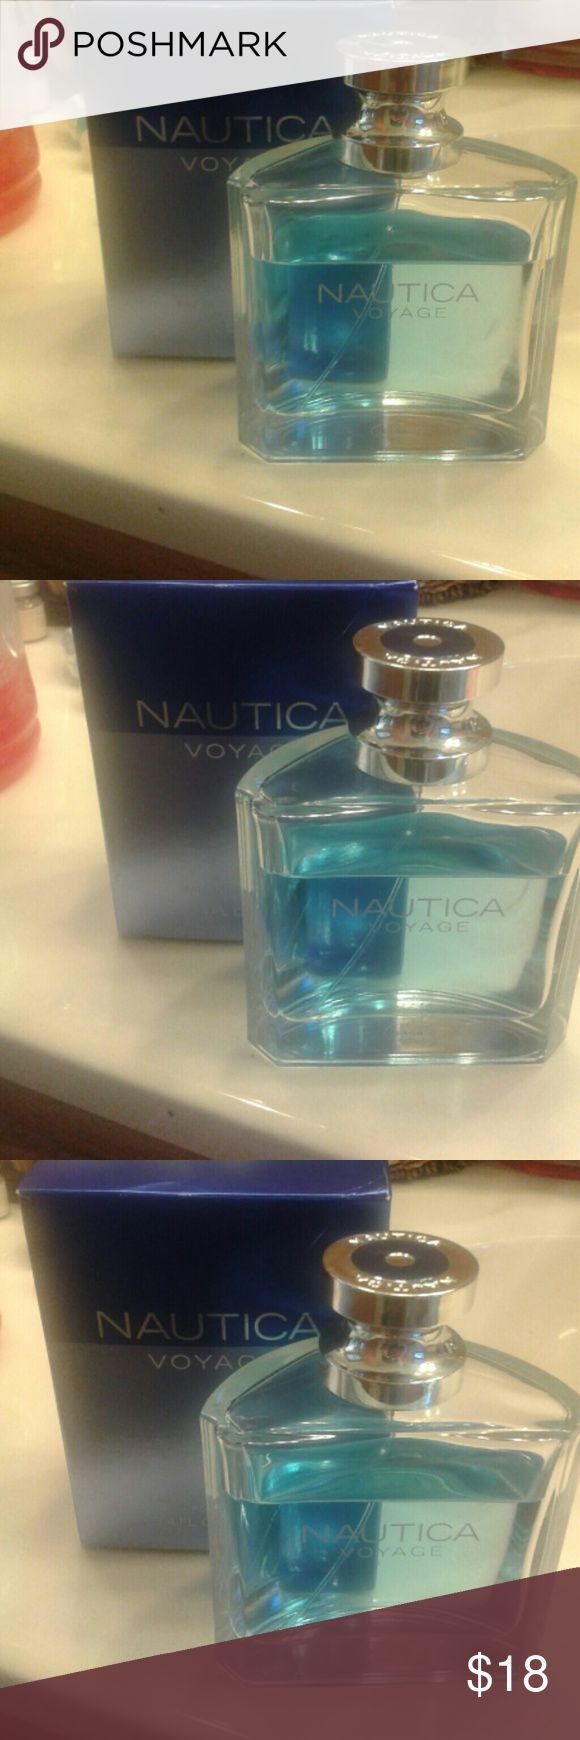 NEW! NAUTICA VOYAGE NEW!NAUTICA VOYAGE cologne , 3.4fl 0z, 100ml, eau de toilet spray, breathable, smells fantastic! Barley used, price reflects the use. Otherwise pretty full . Selling this designer brand for a great price!New! NAUTICA  Accessories